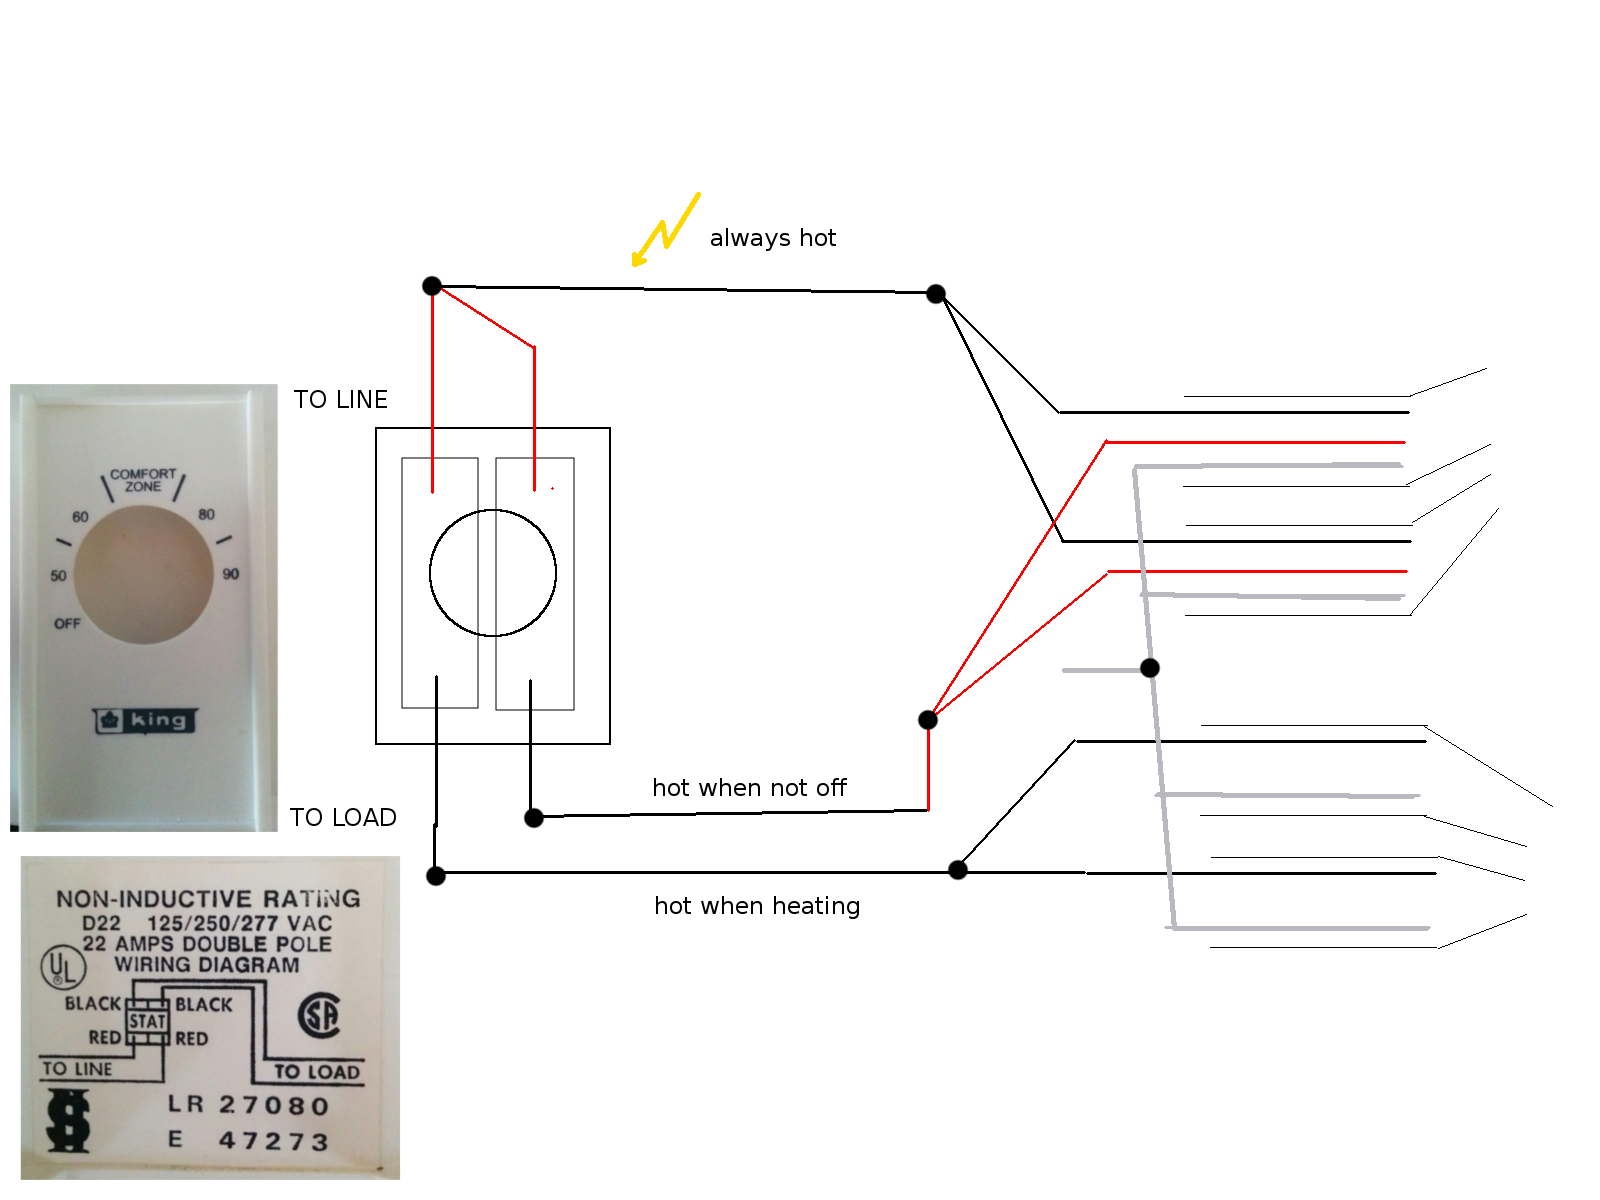 Line Wiring Diagram Wire Center \u2022 2004 Taurus Wiring Diagram Online Wiring  Diagrams 2000 Ford F650